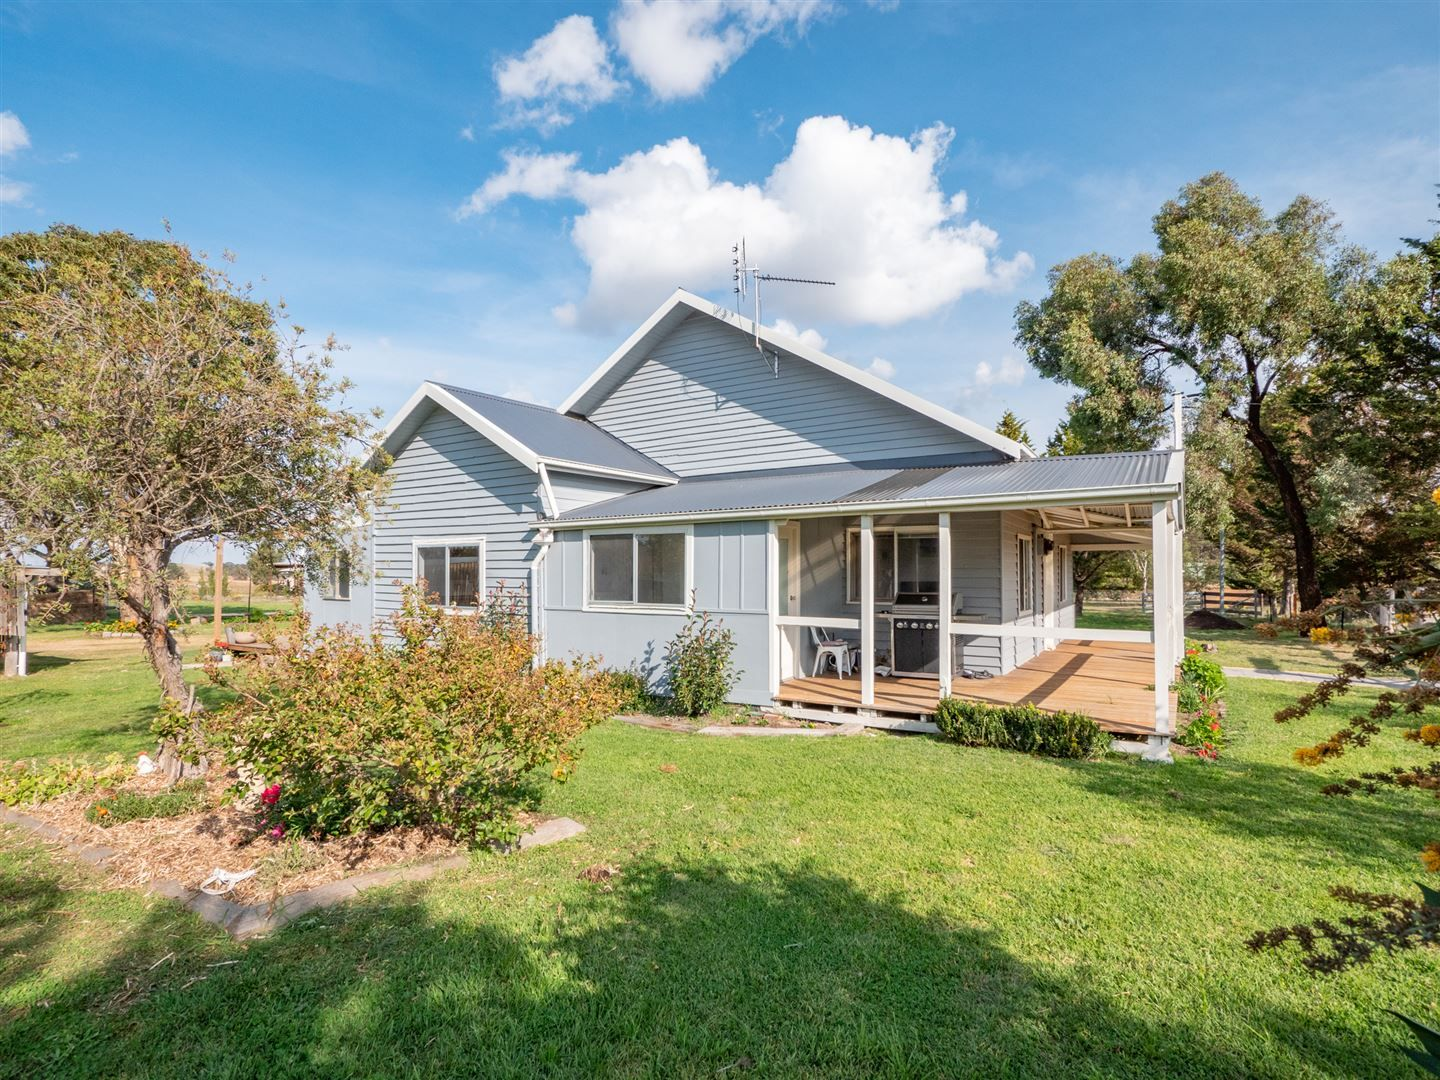 25 Eastern Avenue - Kentucky NSW 2354, Uralla NSW 2358, Image 1